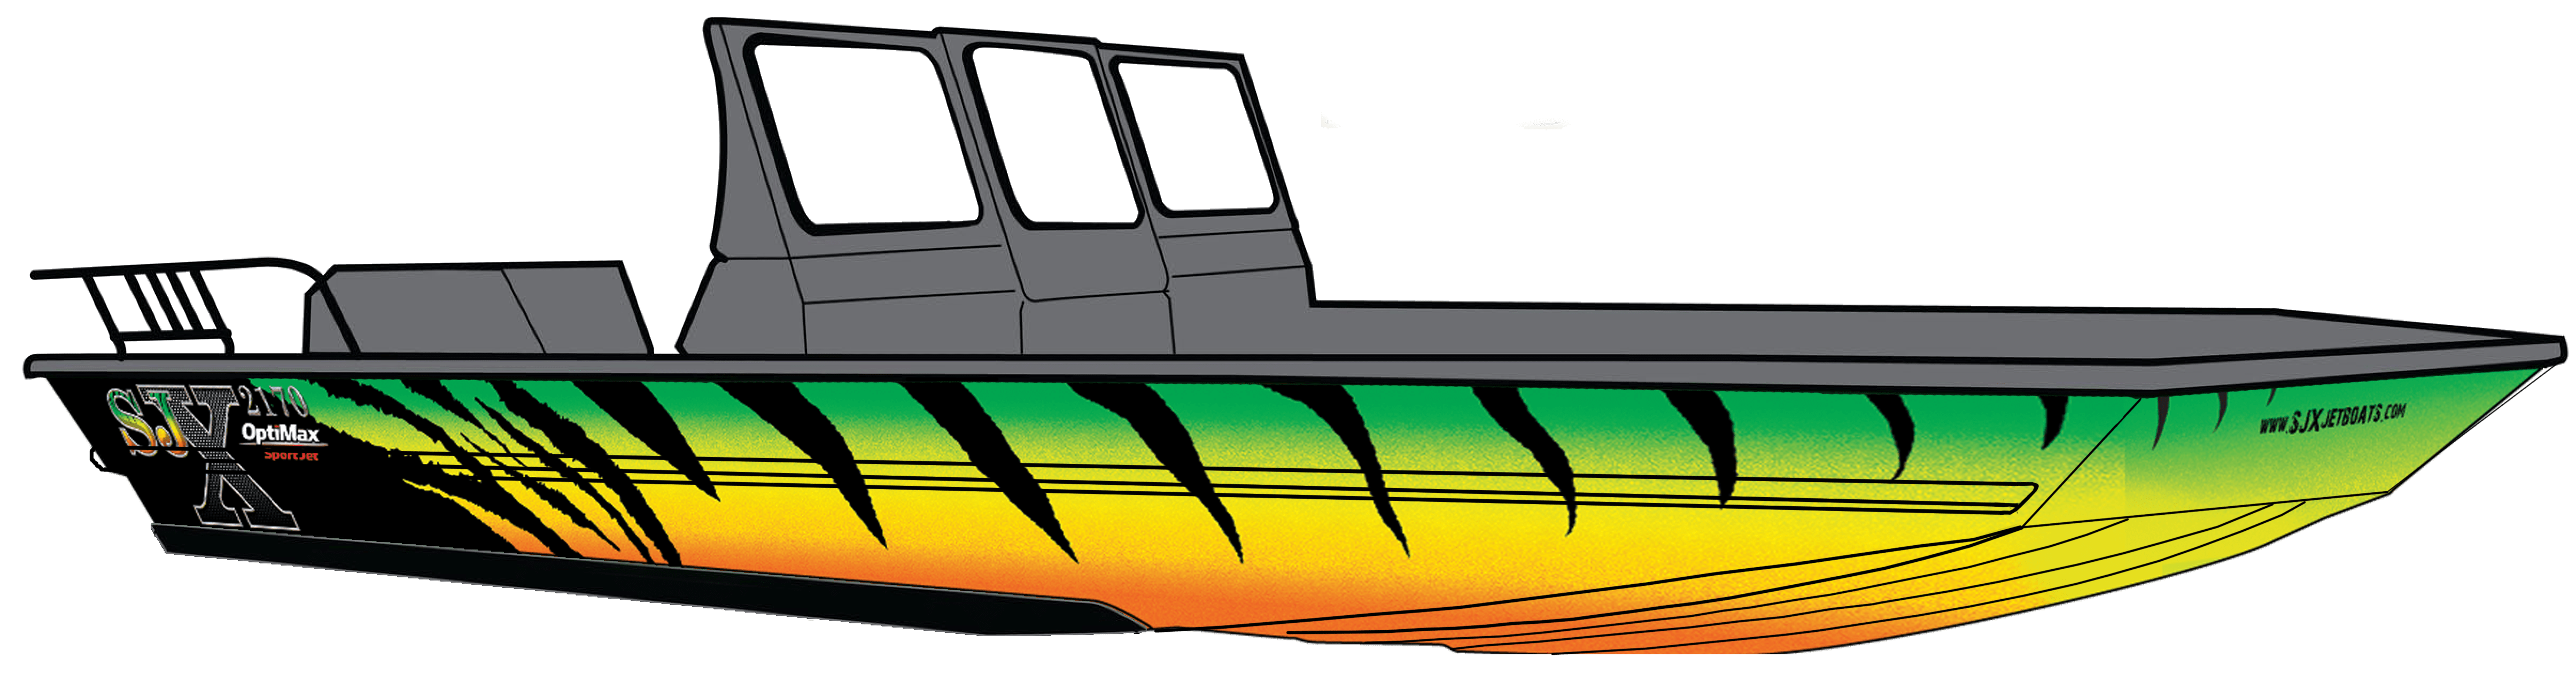 Sjx fishing models jet. Clipart boat speed boat